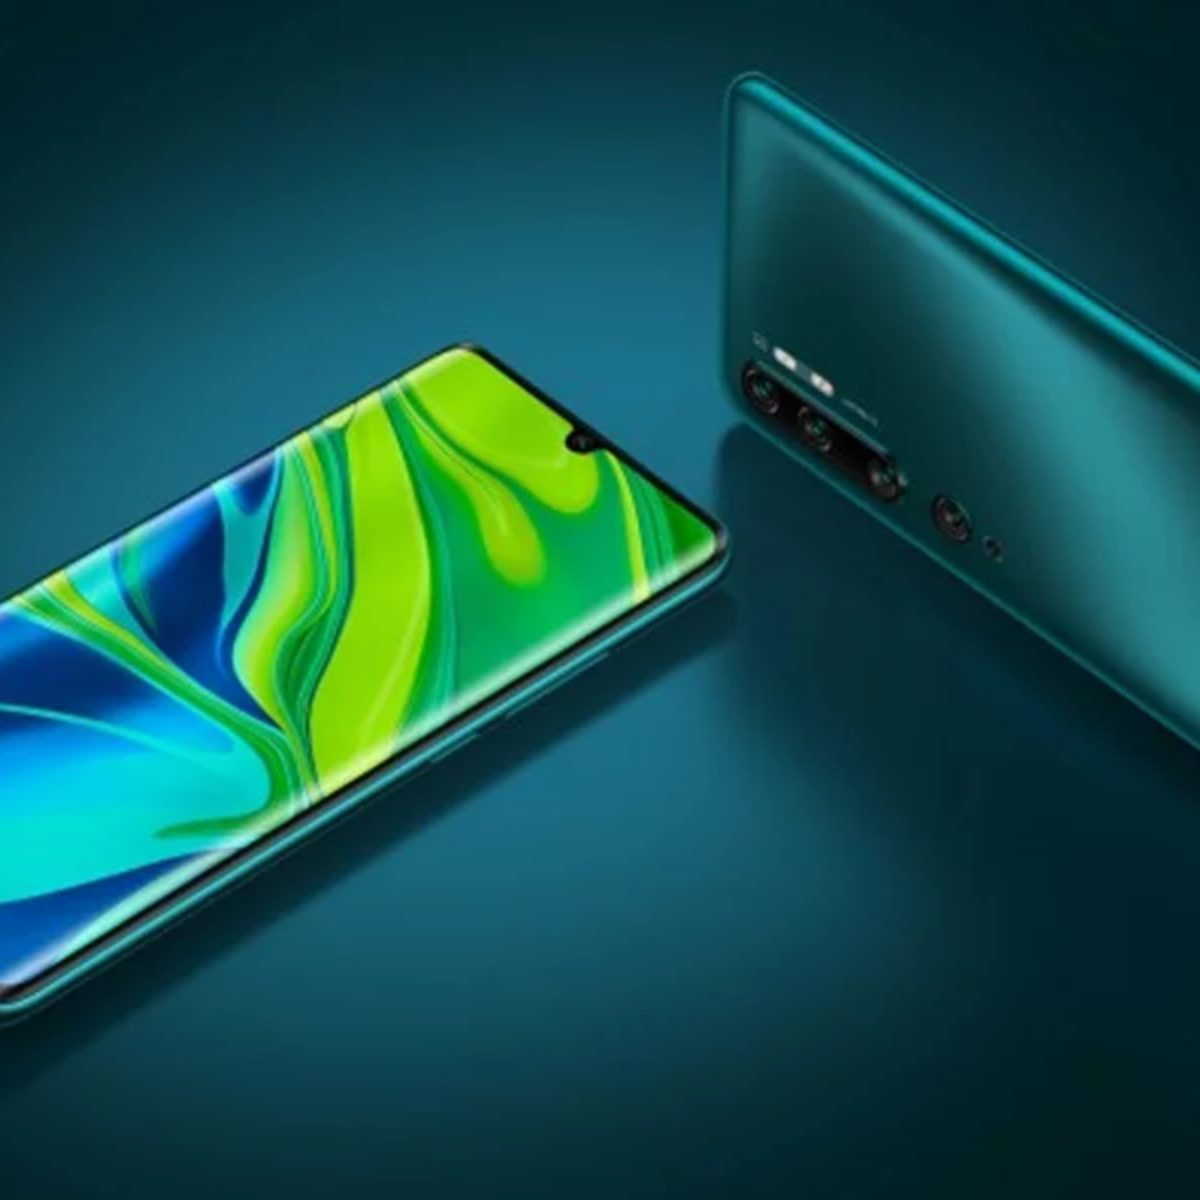 Xiaomi Mi Note 10: Prices in India 2020 - Viral Feed Bee